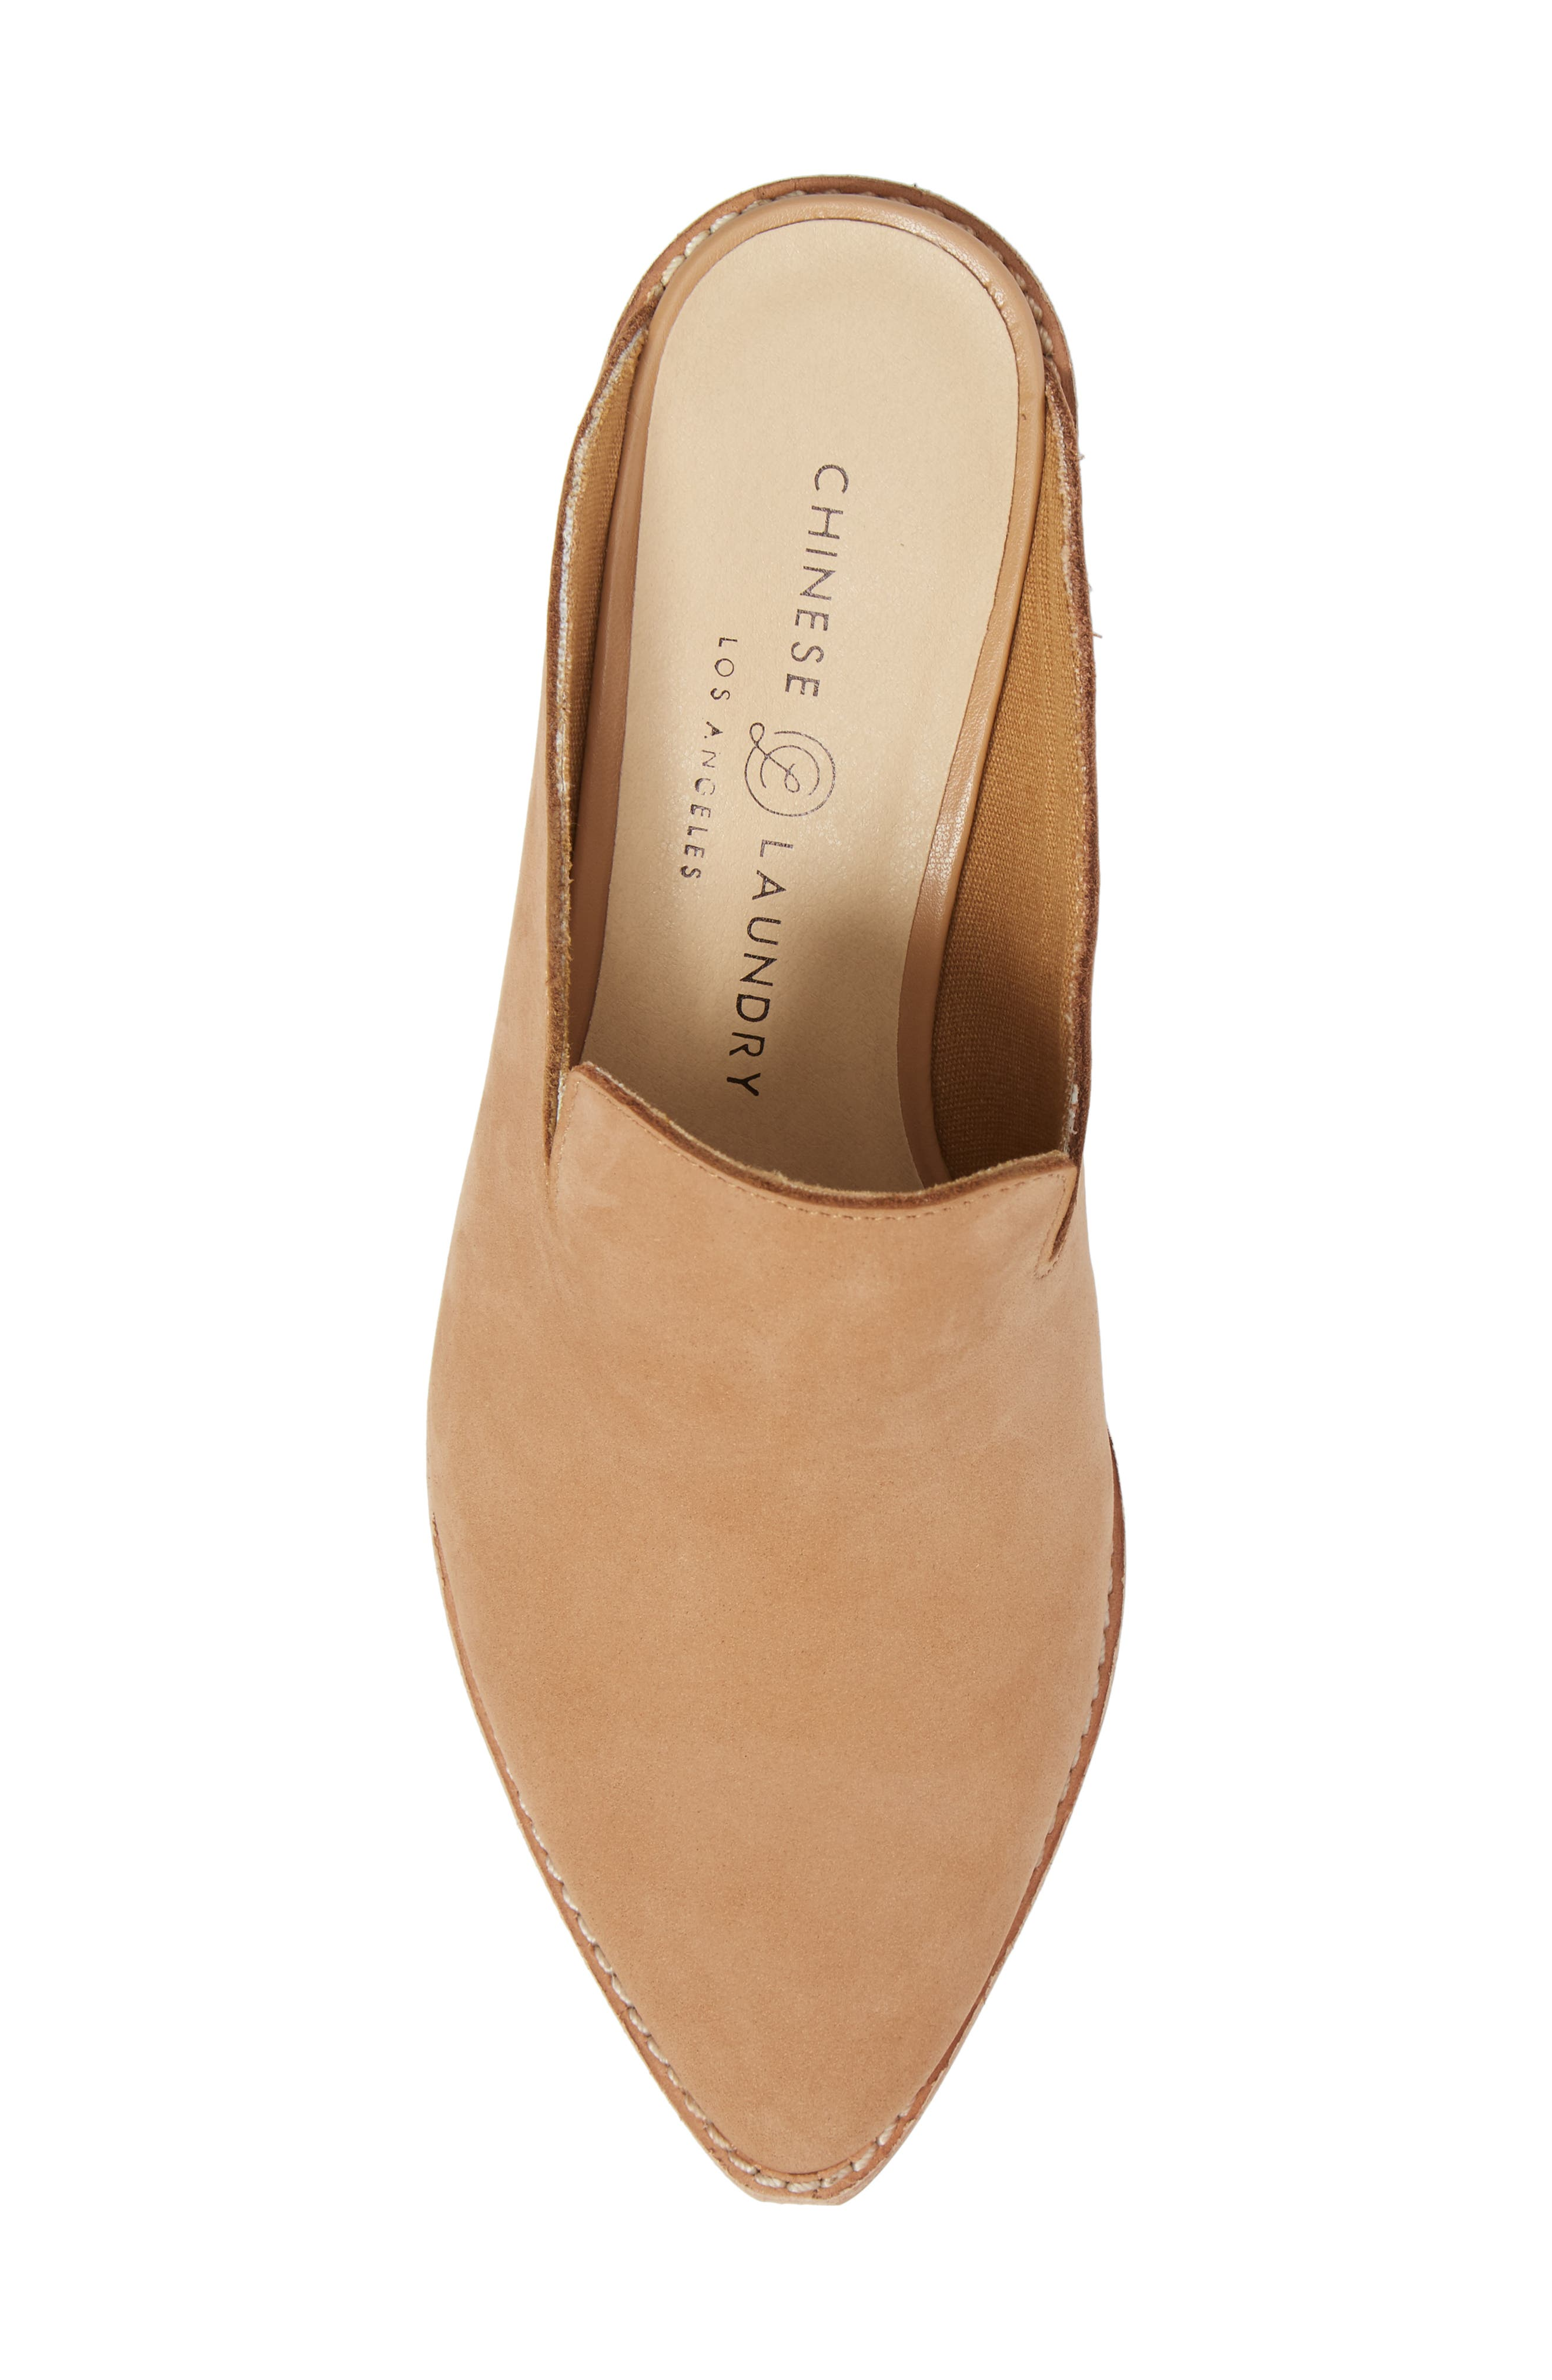 Marnie Loafer Mule,                             Alternate thumbnail 5, color,                             Natural